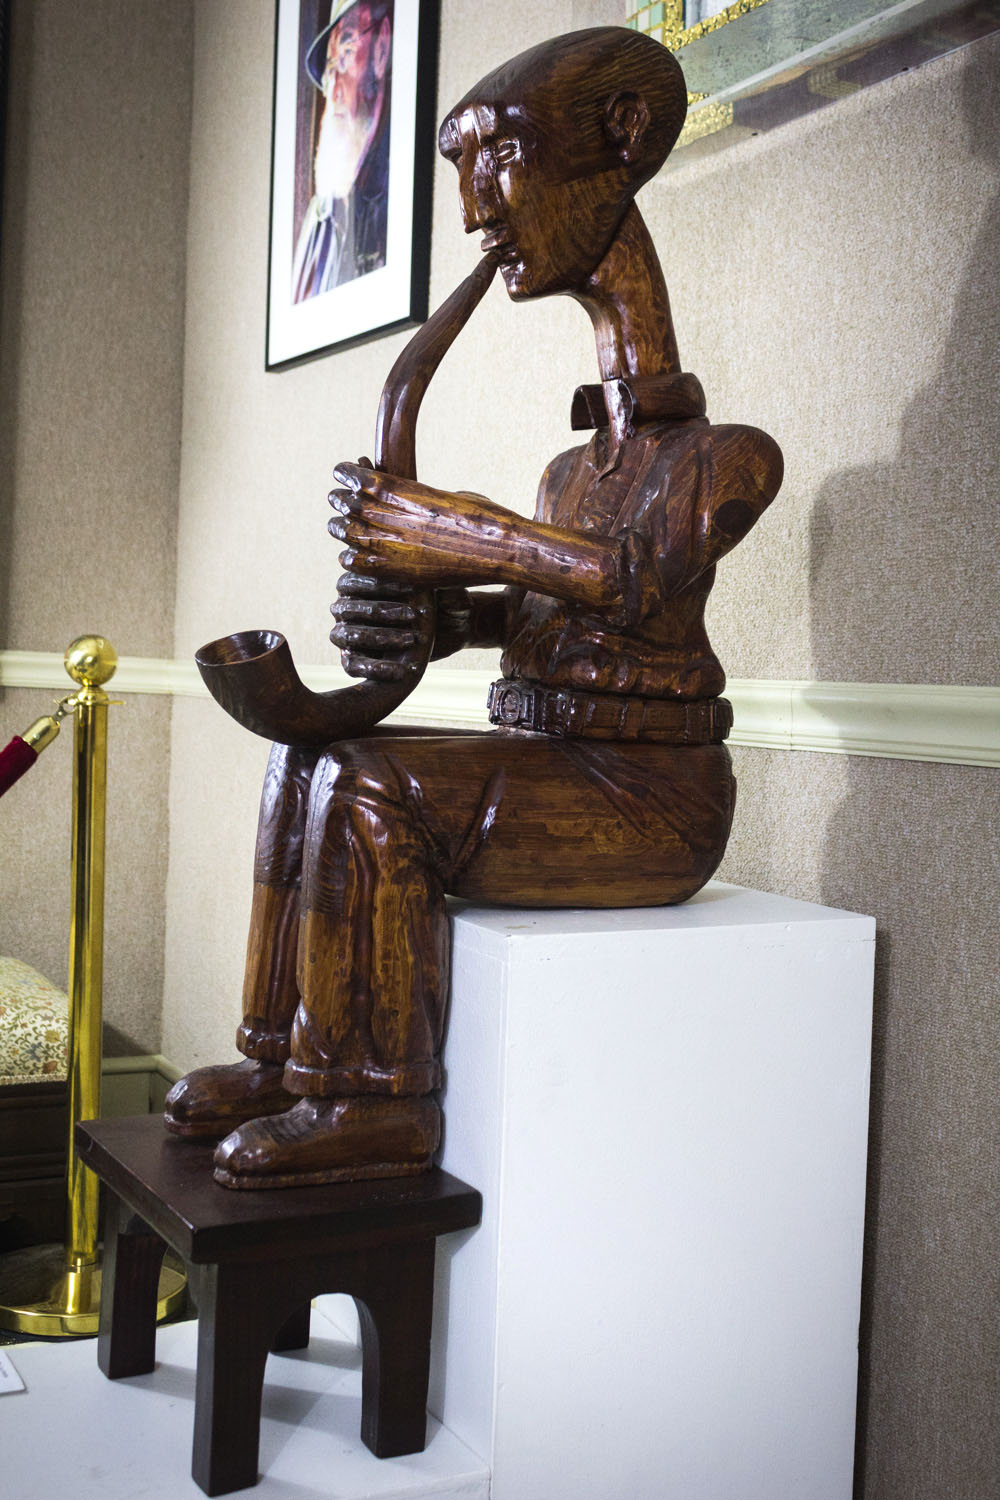 The Musician by Shelby Horton, Wood Carving, Donation